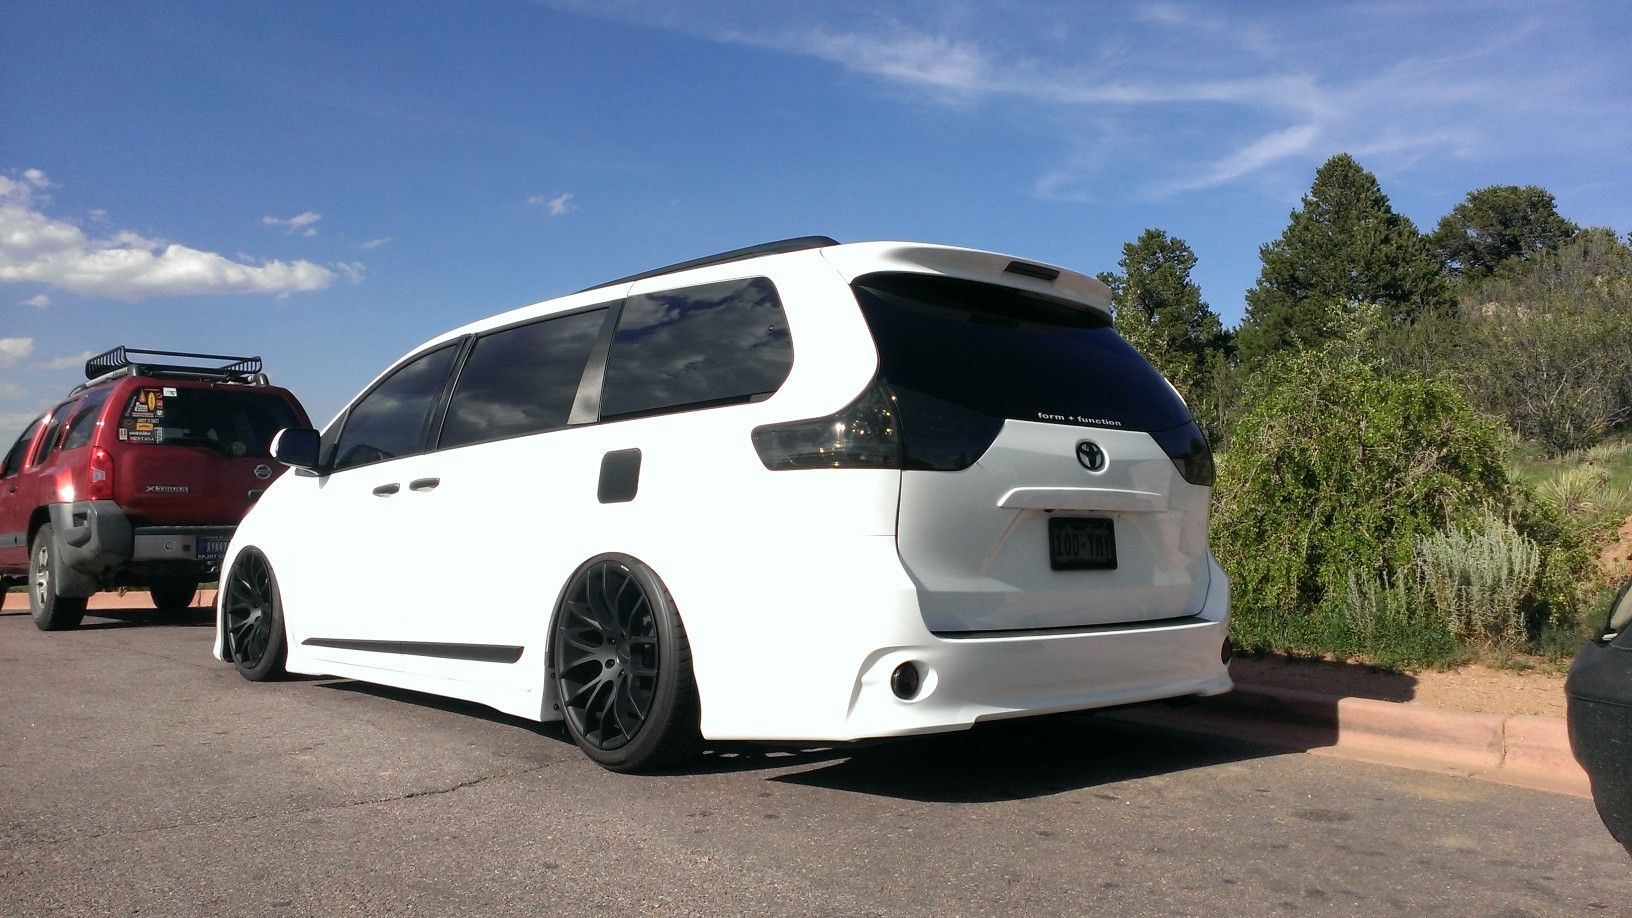 Slammed sienna minivans can be cool right pinterest for Should i buy a toyota sienna or honda odyssey